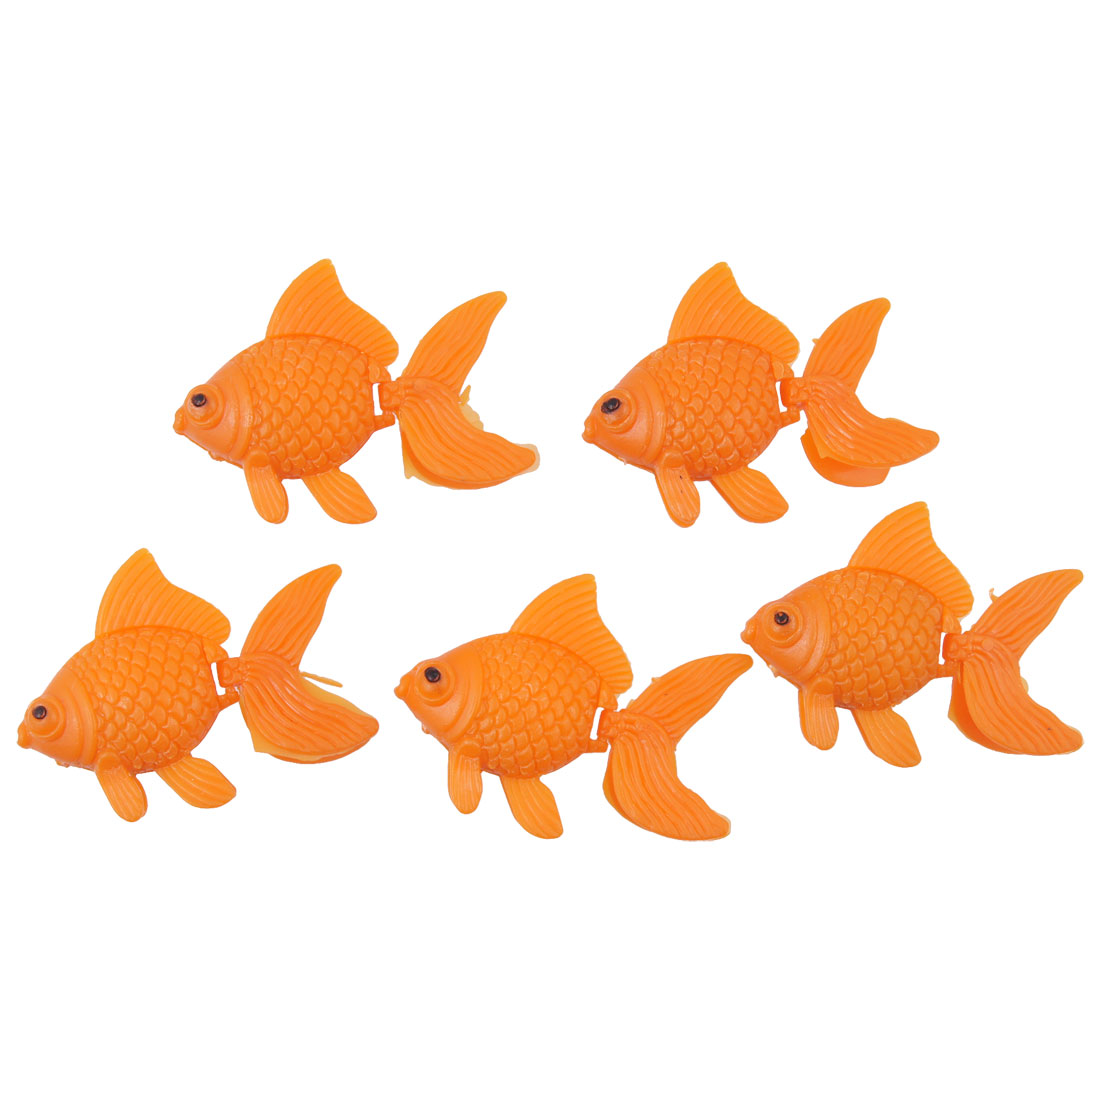 5PCS Orange Plastic Fish Ornament Decor for Fish Tank